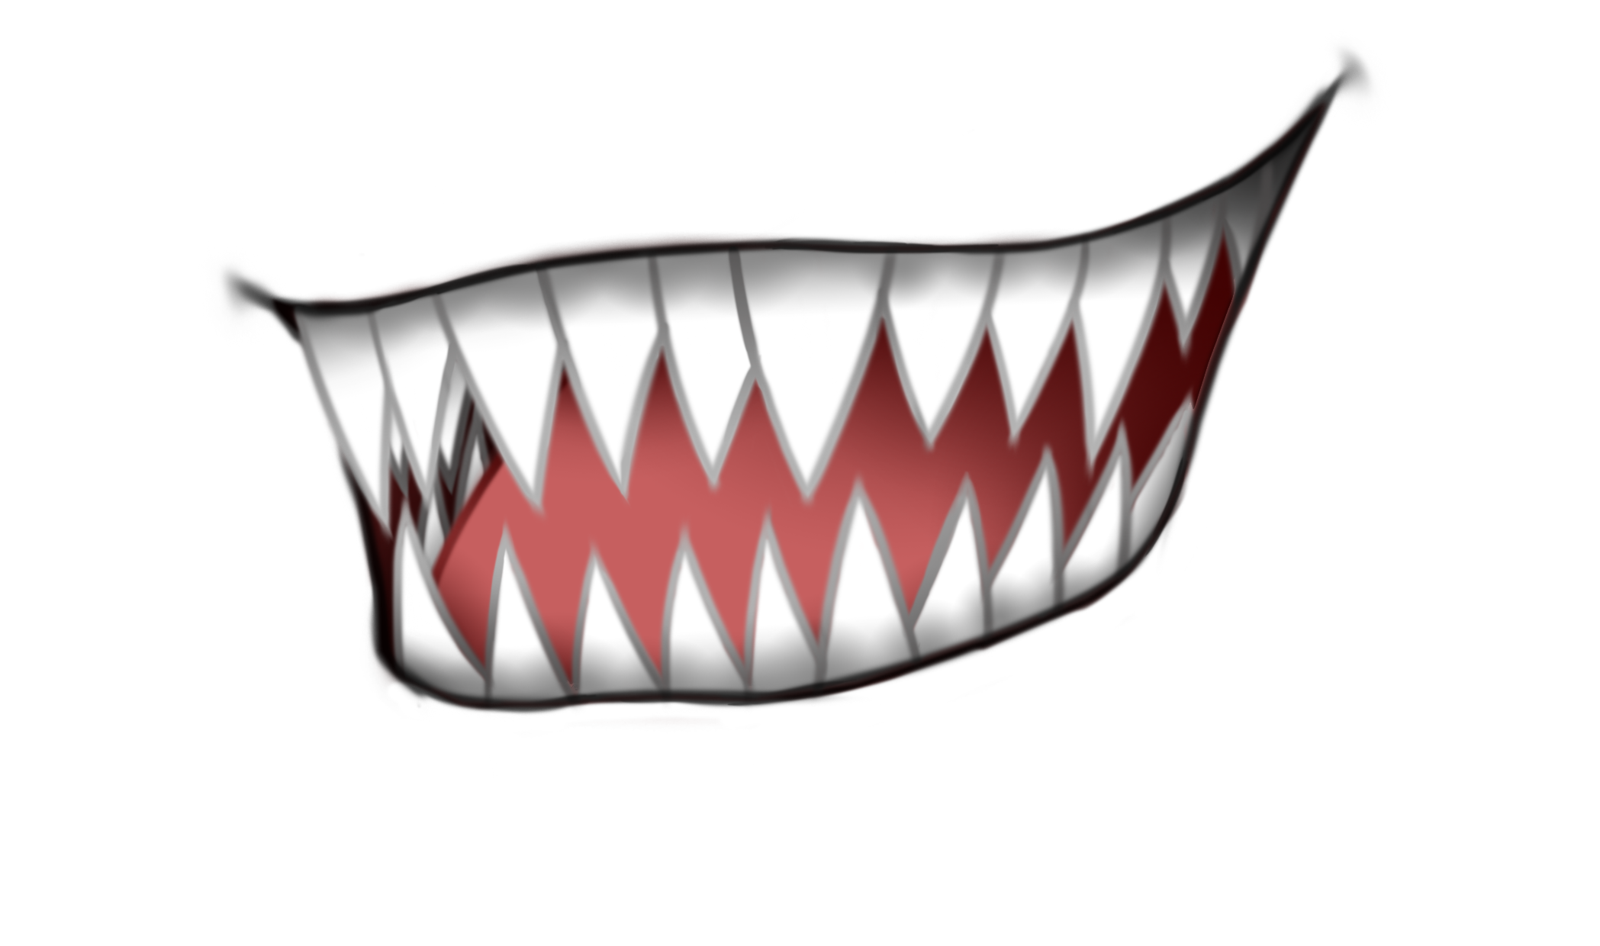 anime fangs transparent png image